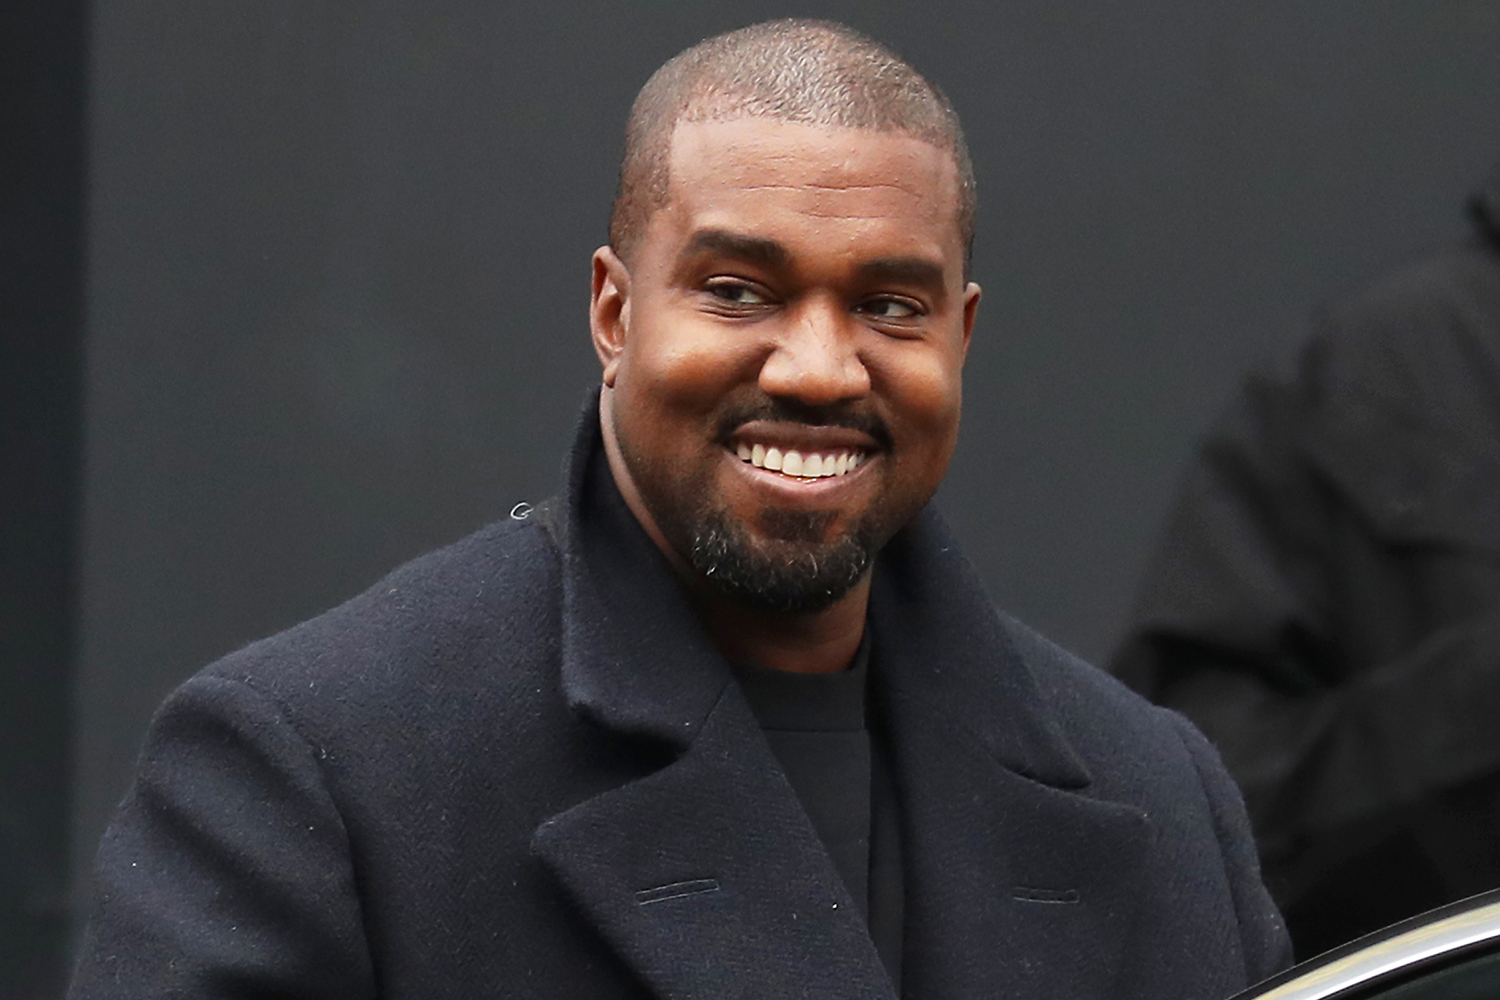 Kanye West seen leaving Michiko Sushino restaurant with his daughter North West (not pictured) in Queen's Park on October 10, 2020 in London, England.